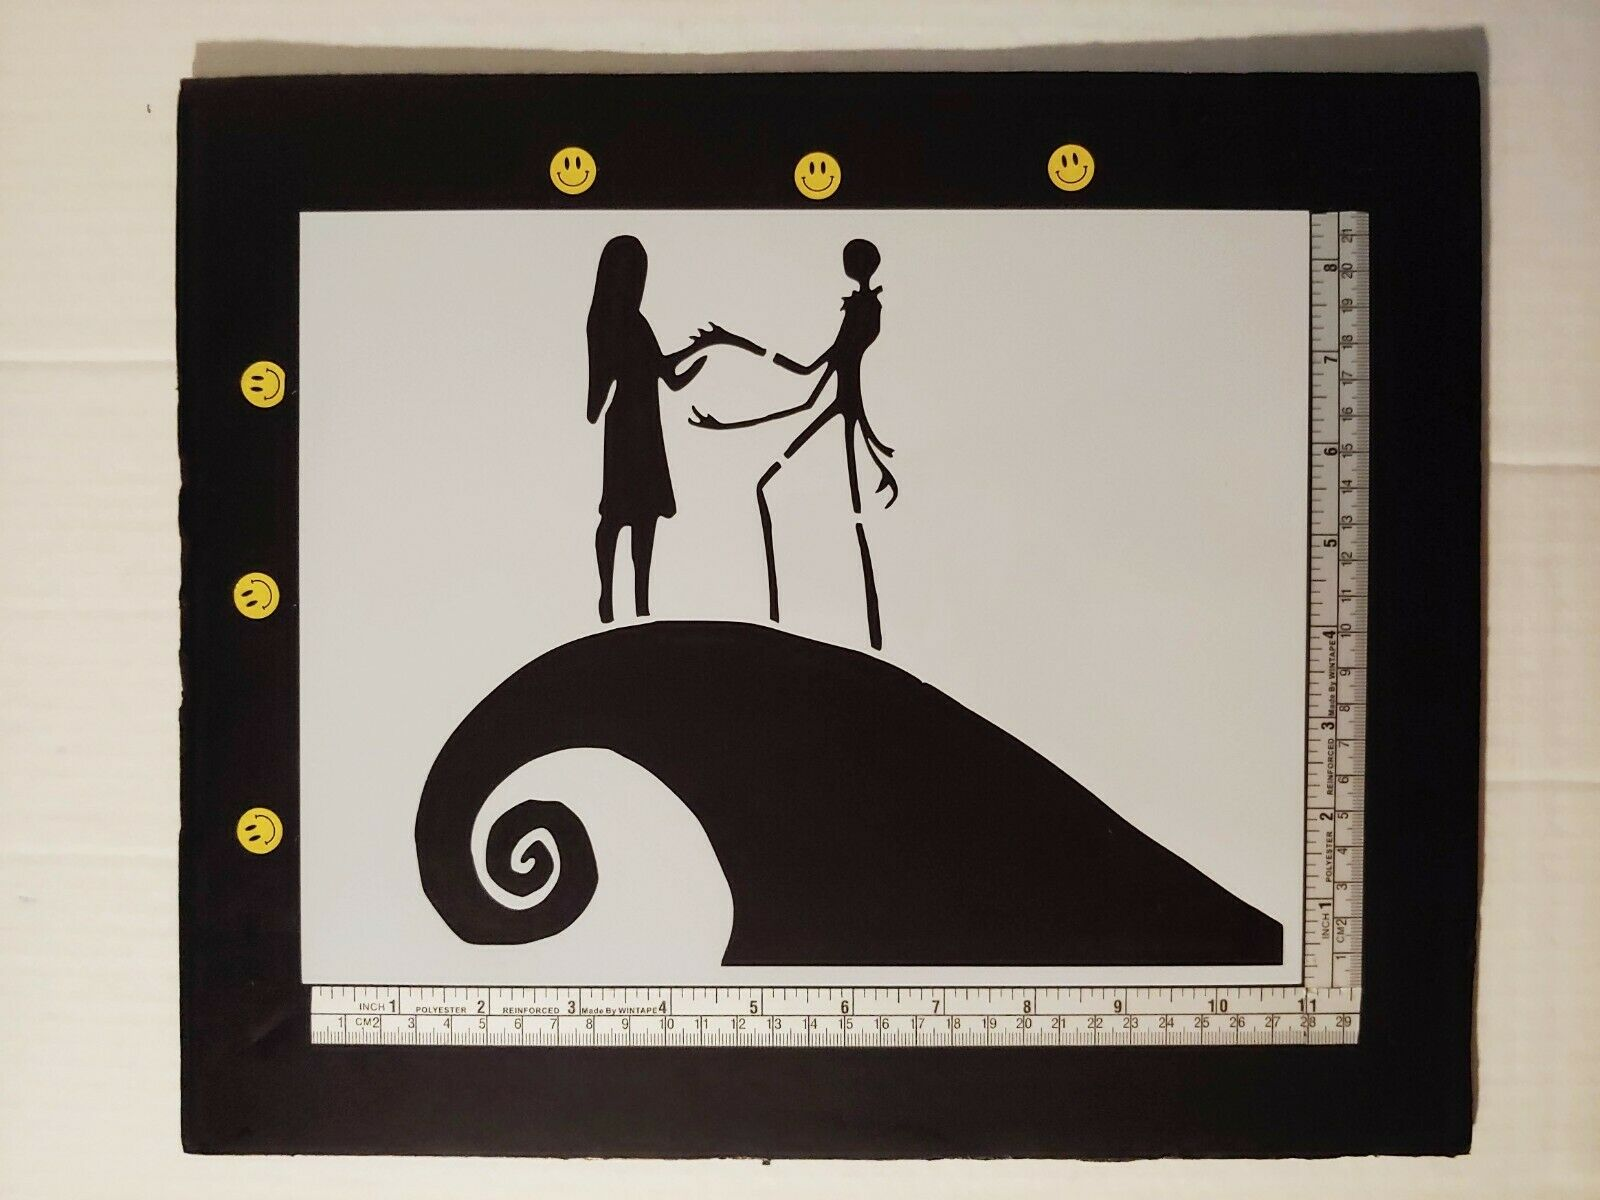 nightmare before christmas 85 x 11 custom stencil fast free shipping 1 of 1only 4 available